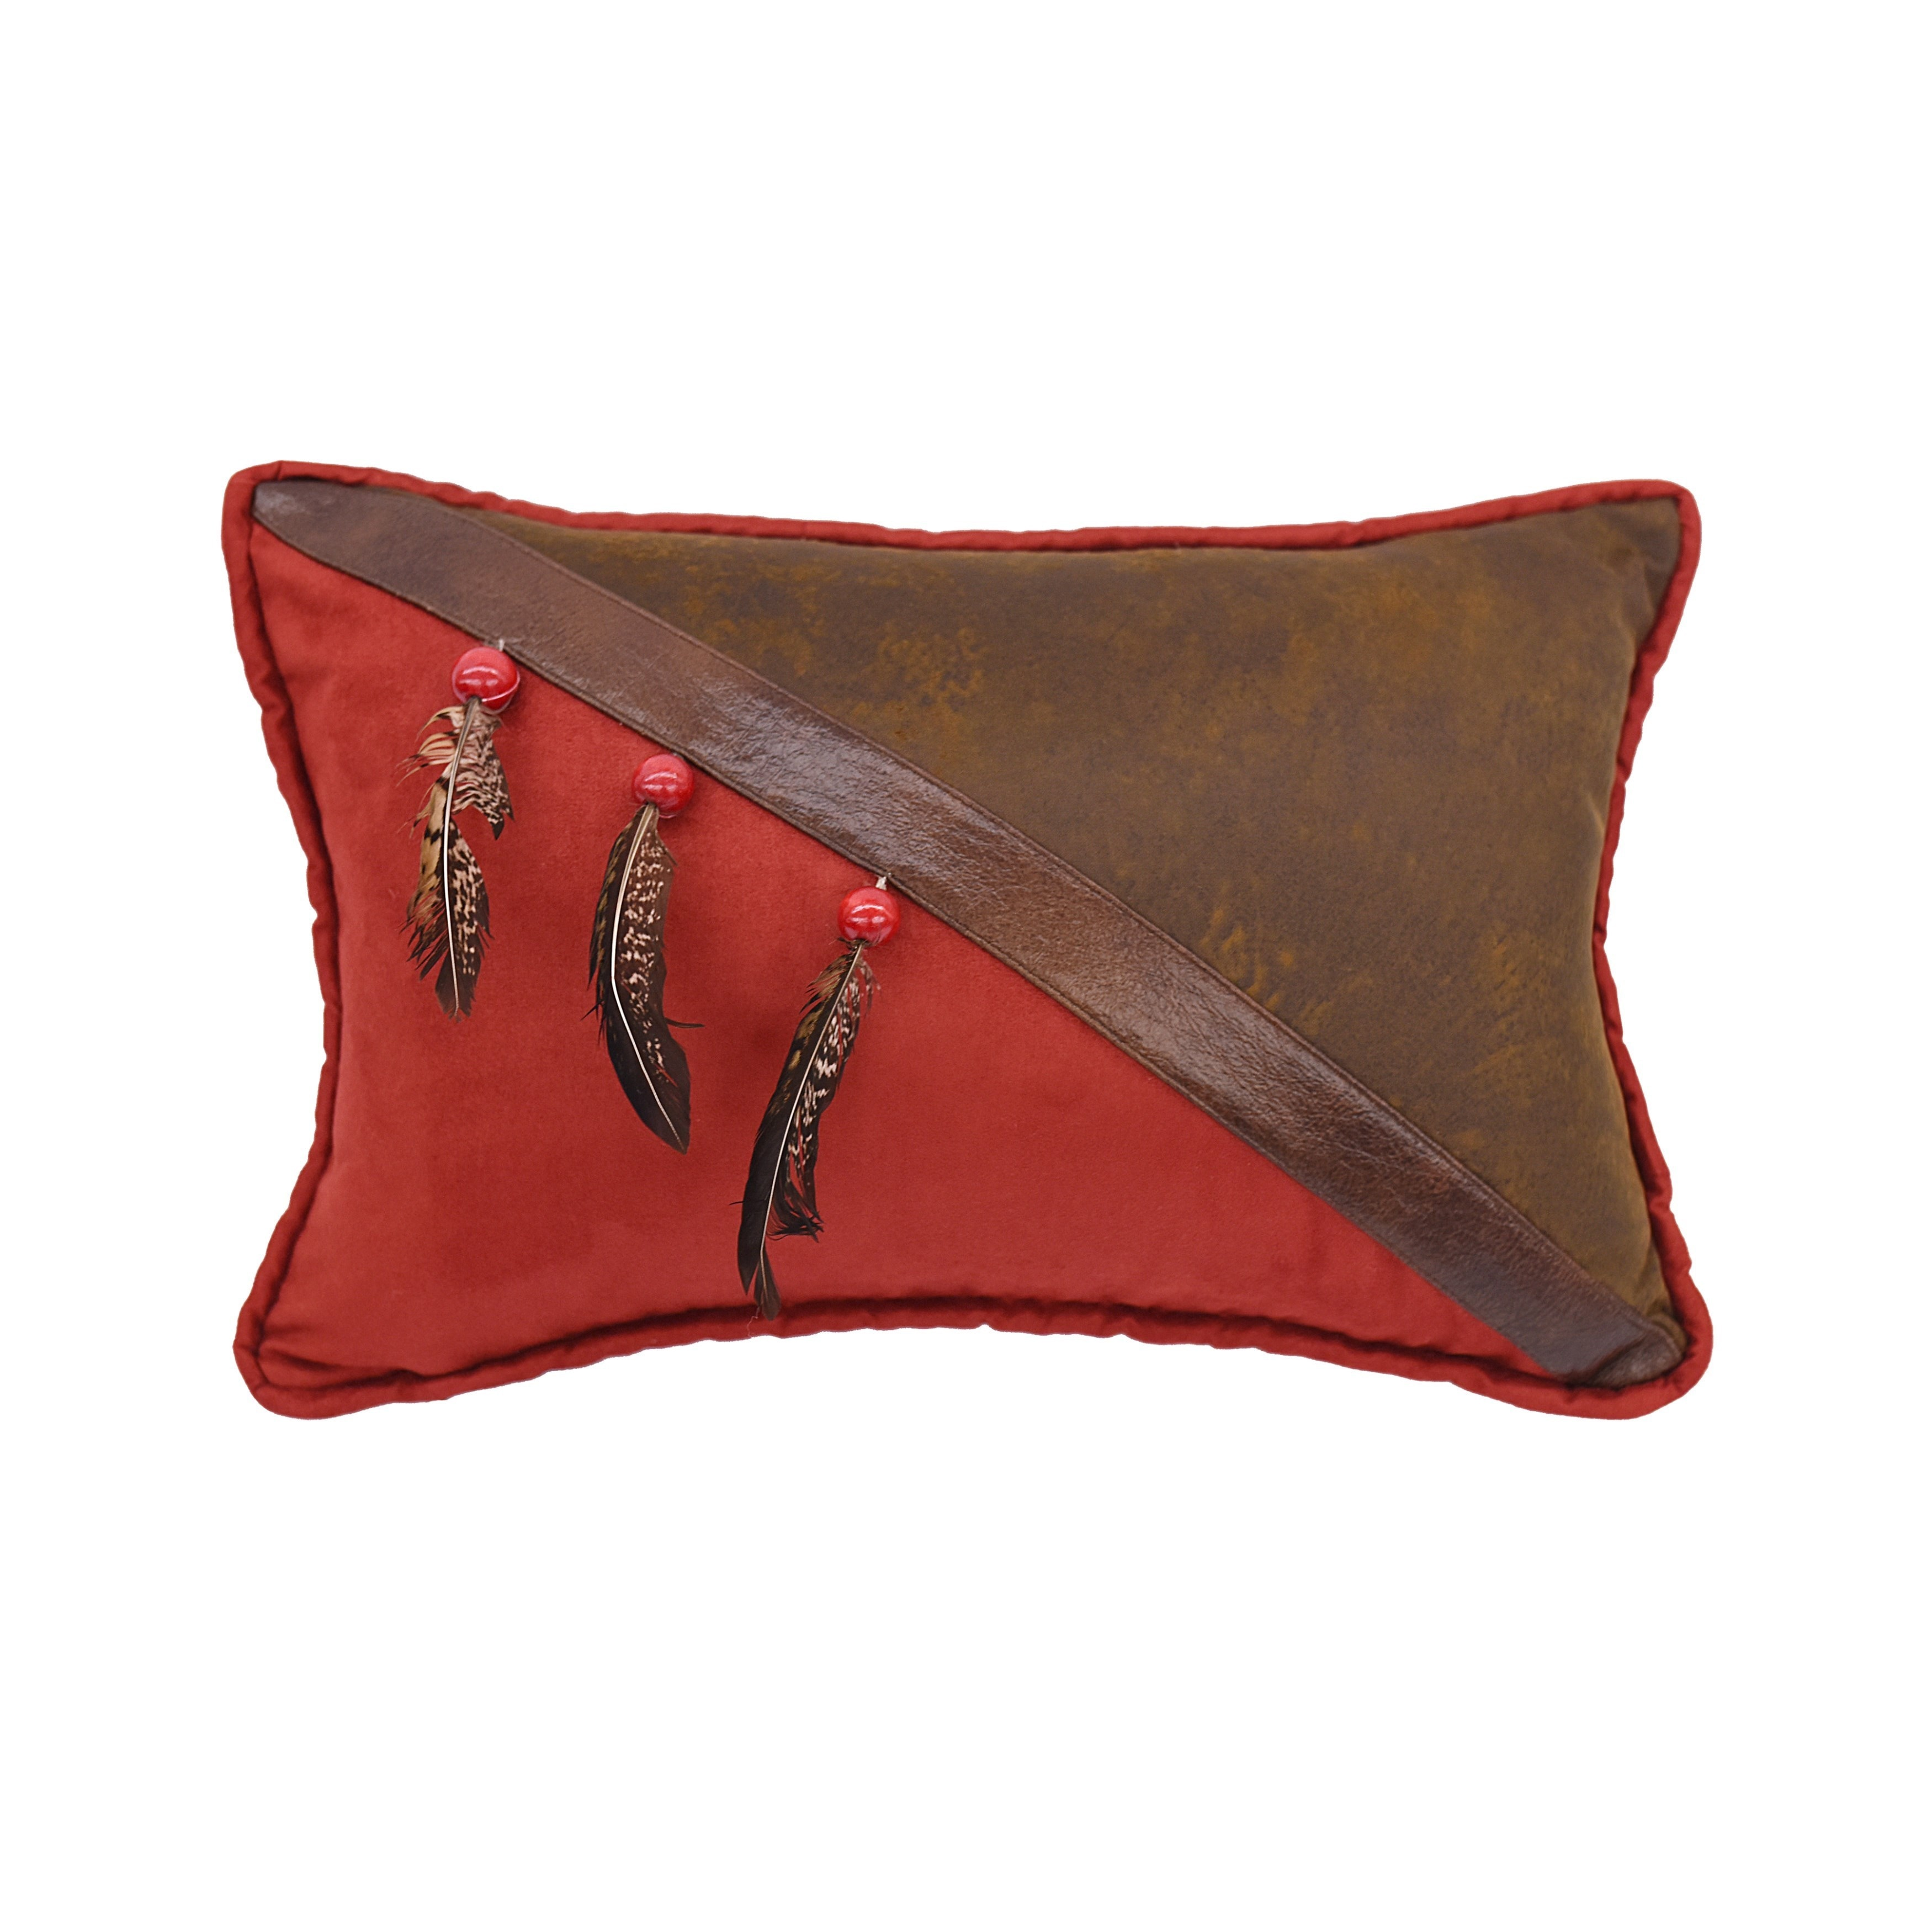 HiEnd Accents Multicolor 1/2 Faux Leather 12-inch x 18-inch Throw Pillow with Beads and Feathers (Throw Pillows)